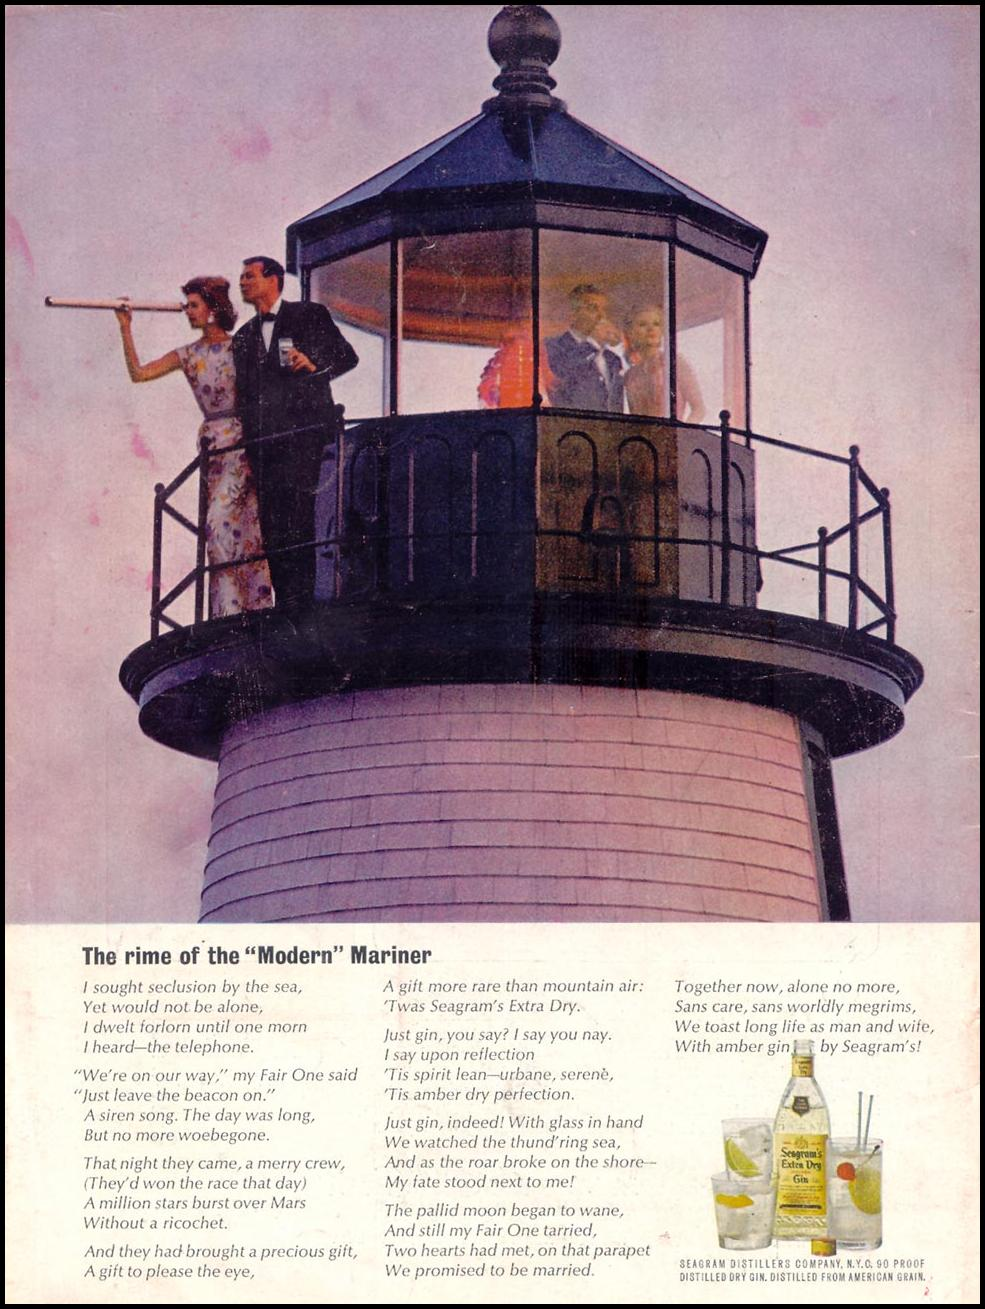 SEAGRAM'S EXTRA DRY GIN TIME 07/27/1962 BACK COVER